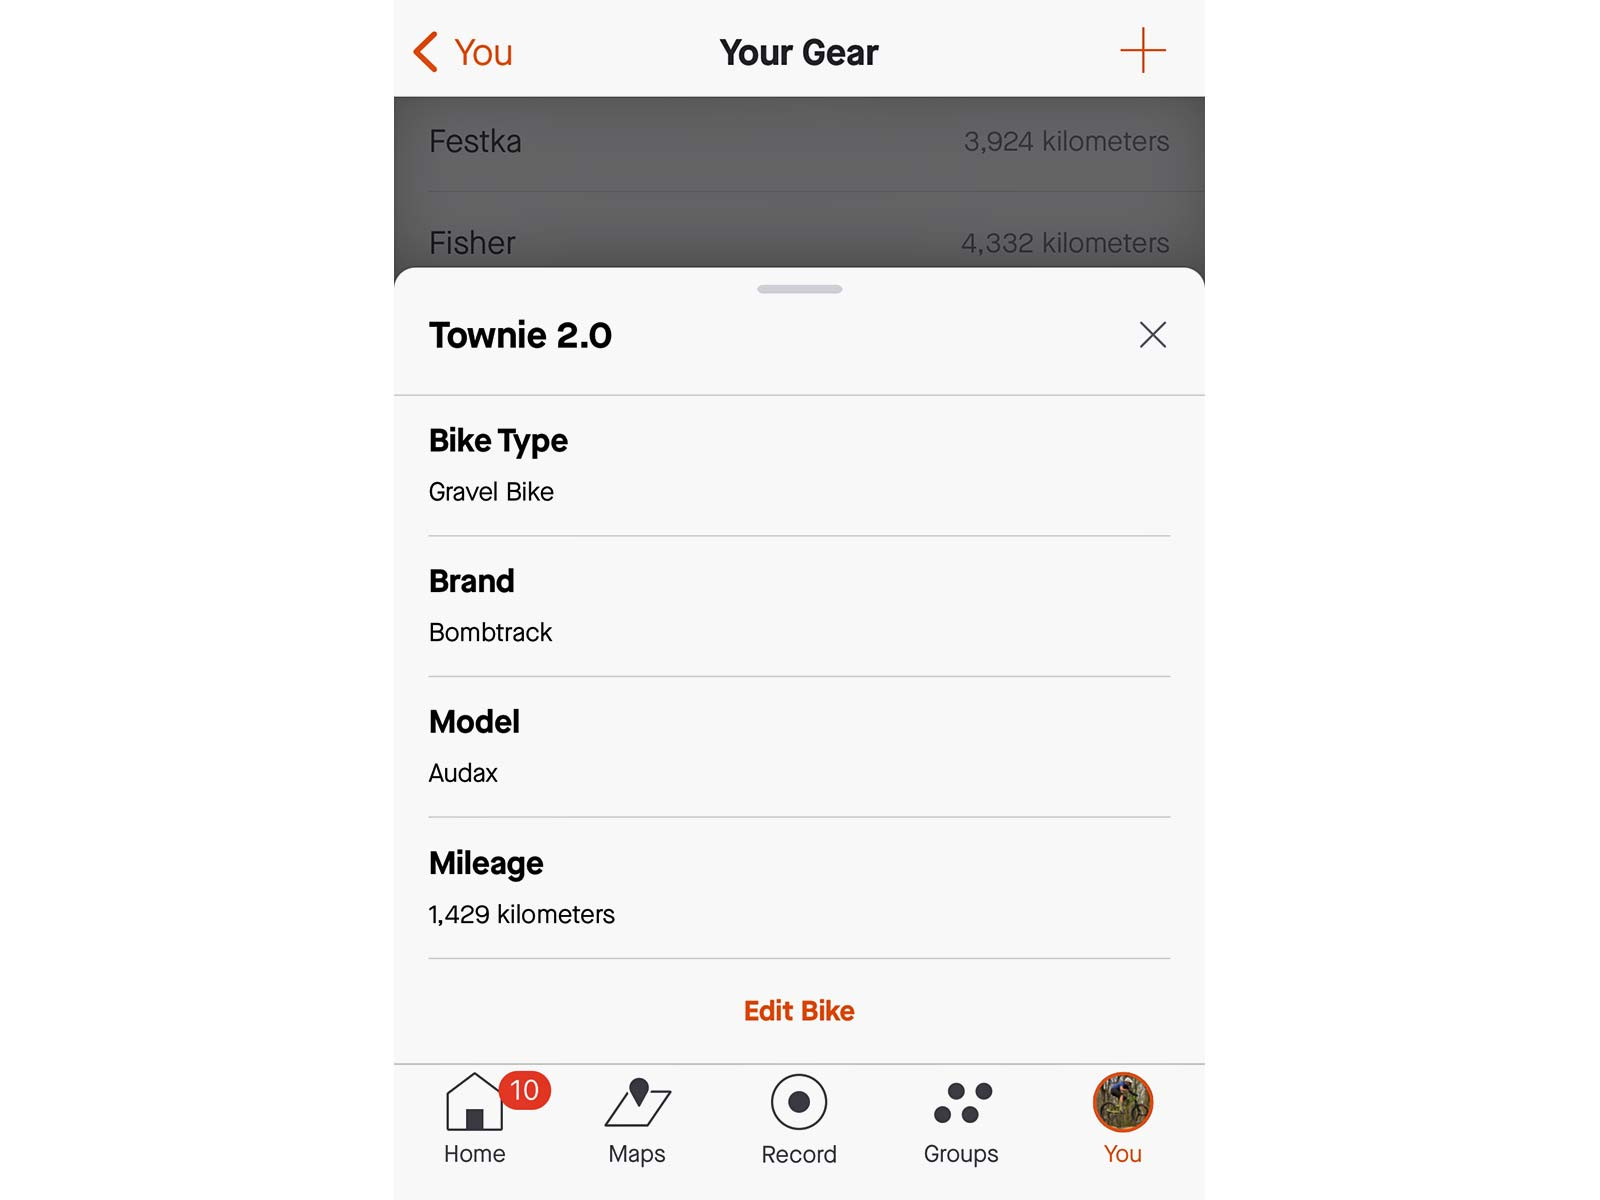 Strava Mobile Gear management for all